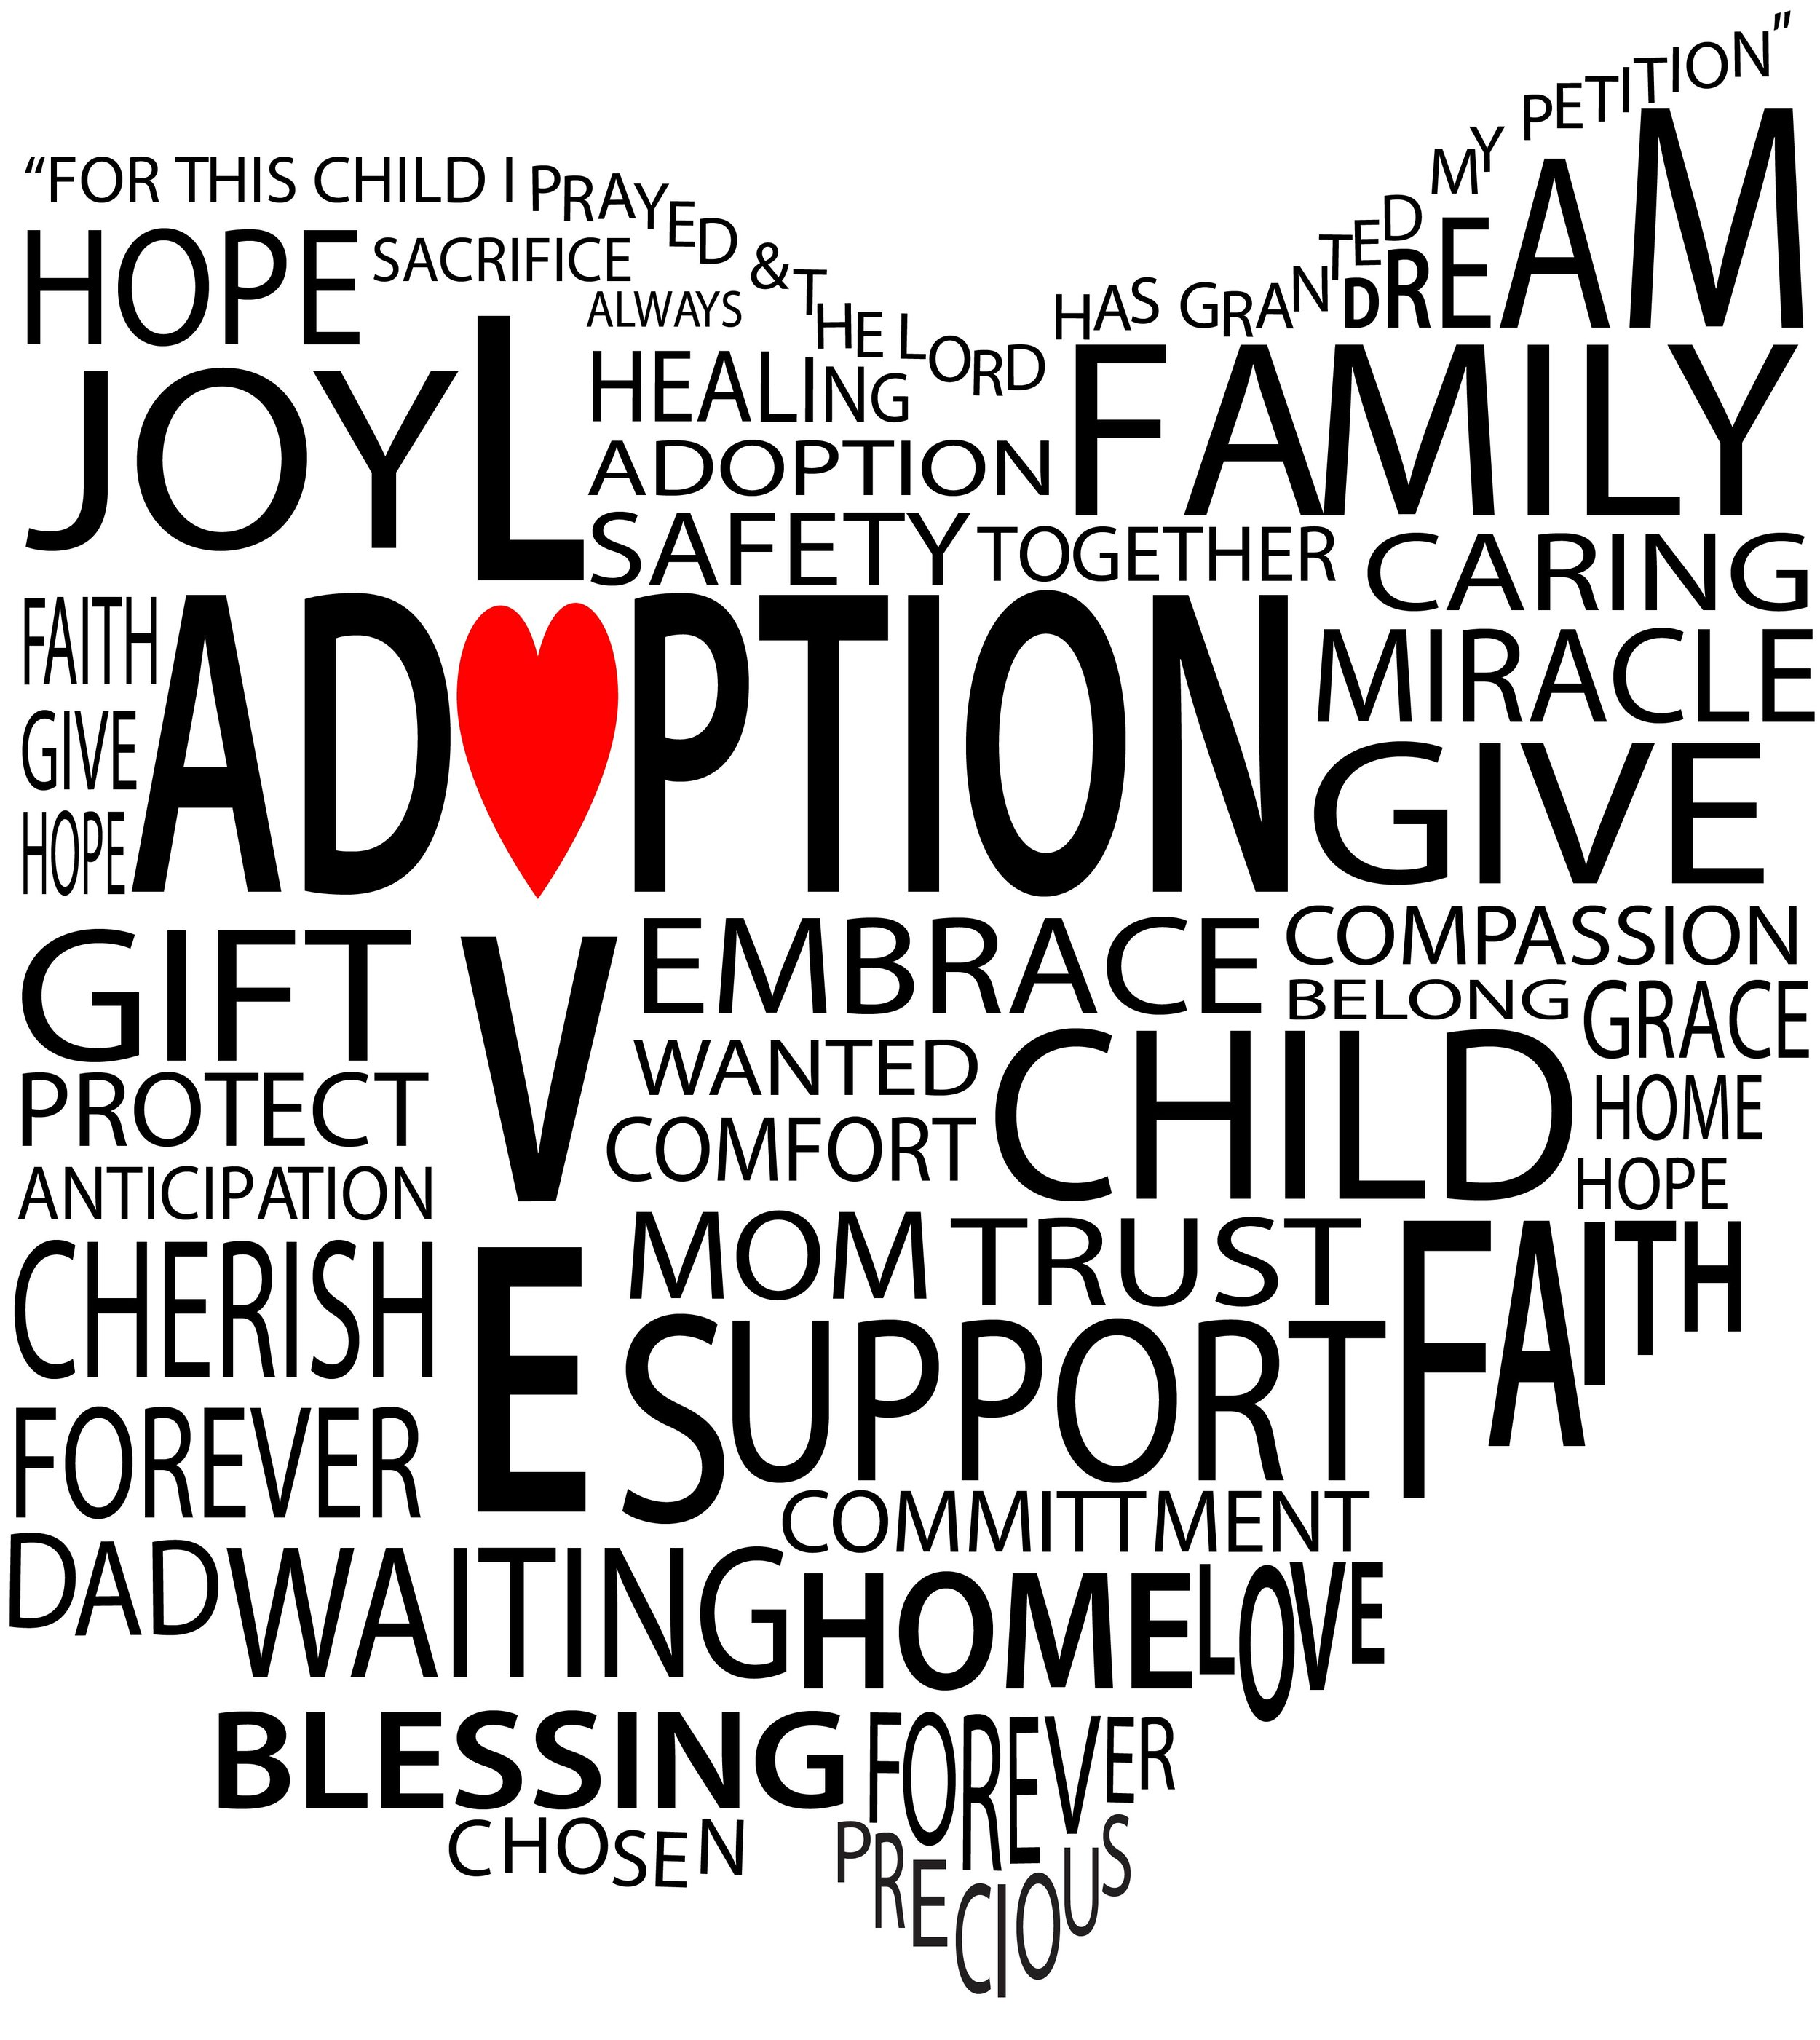 Adoption T-shirt Design.jpg